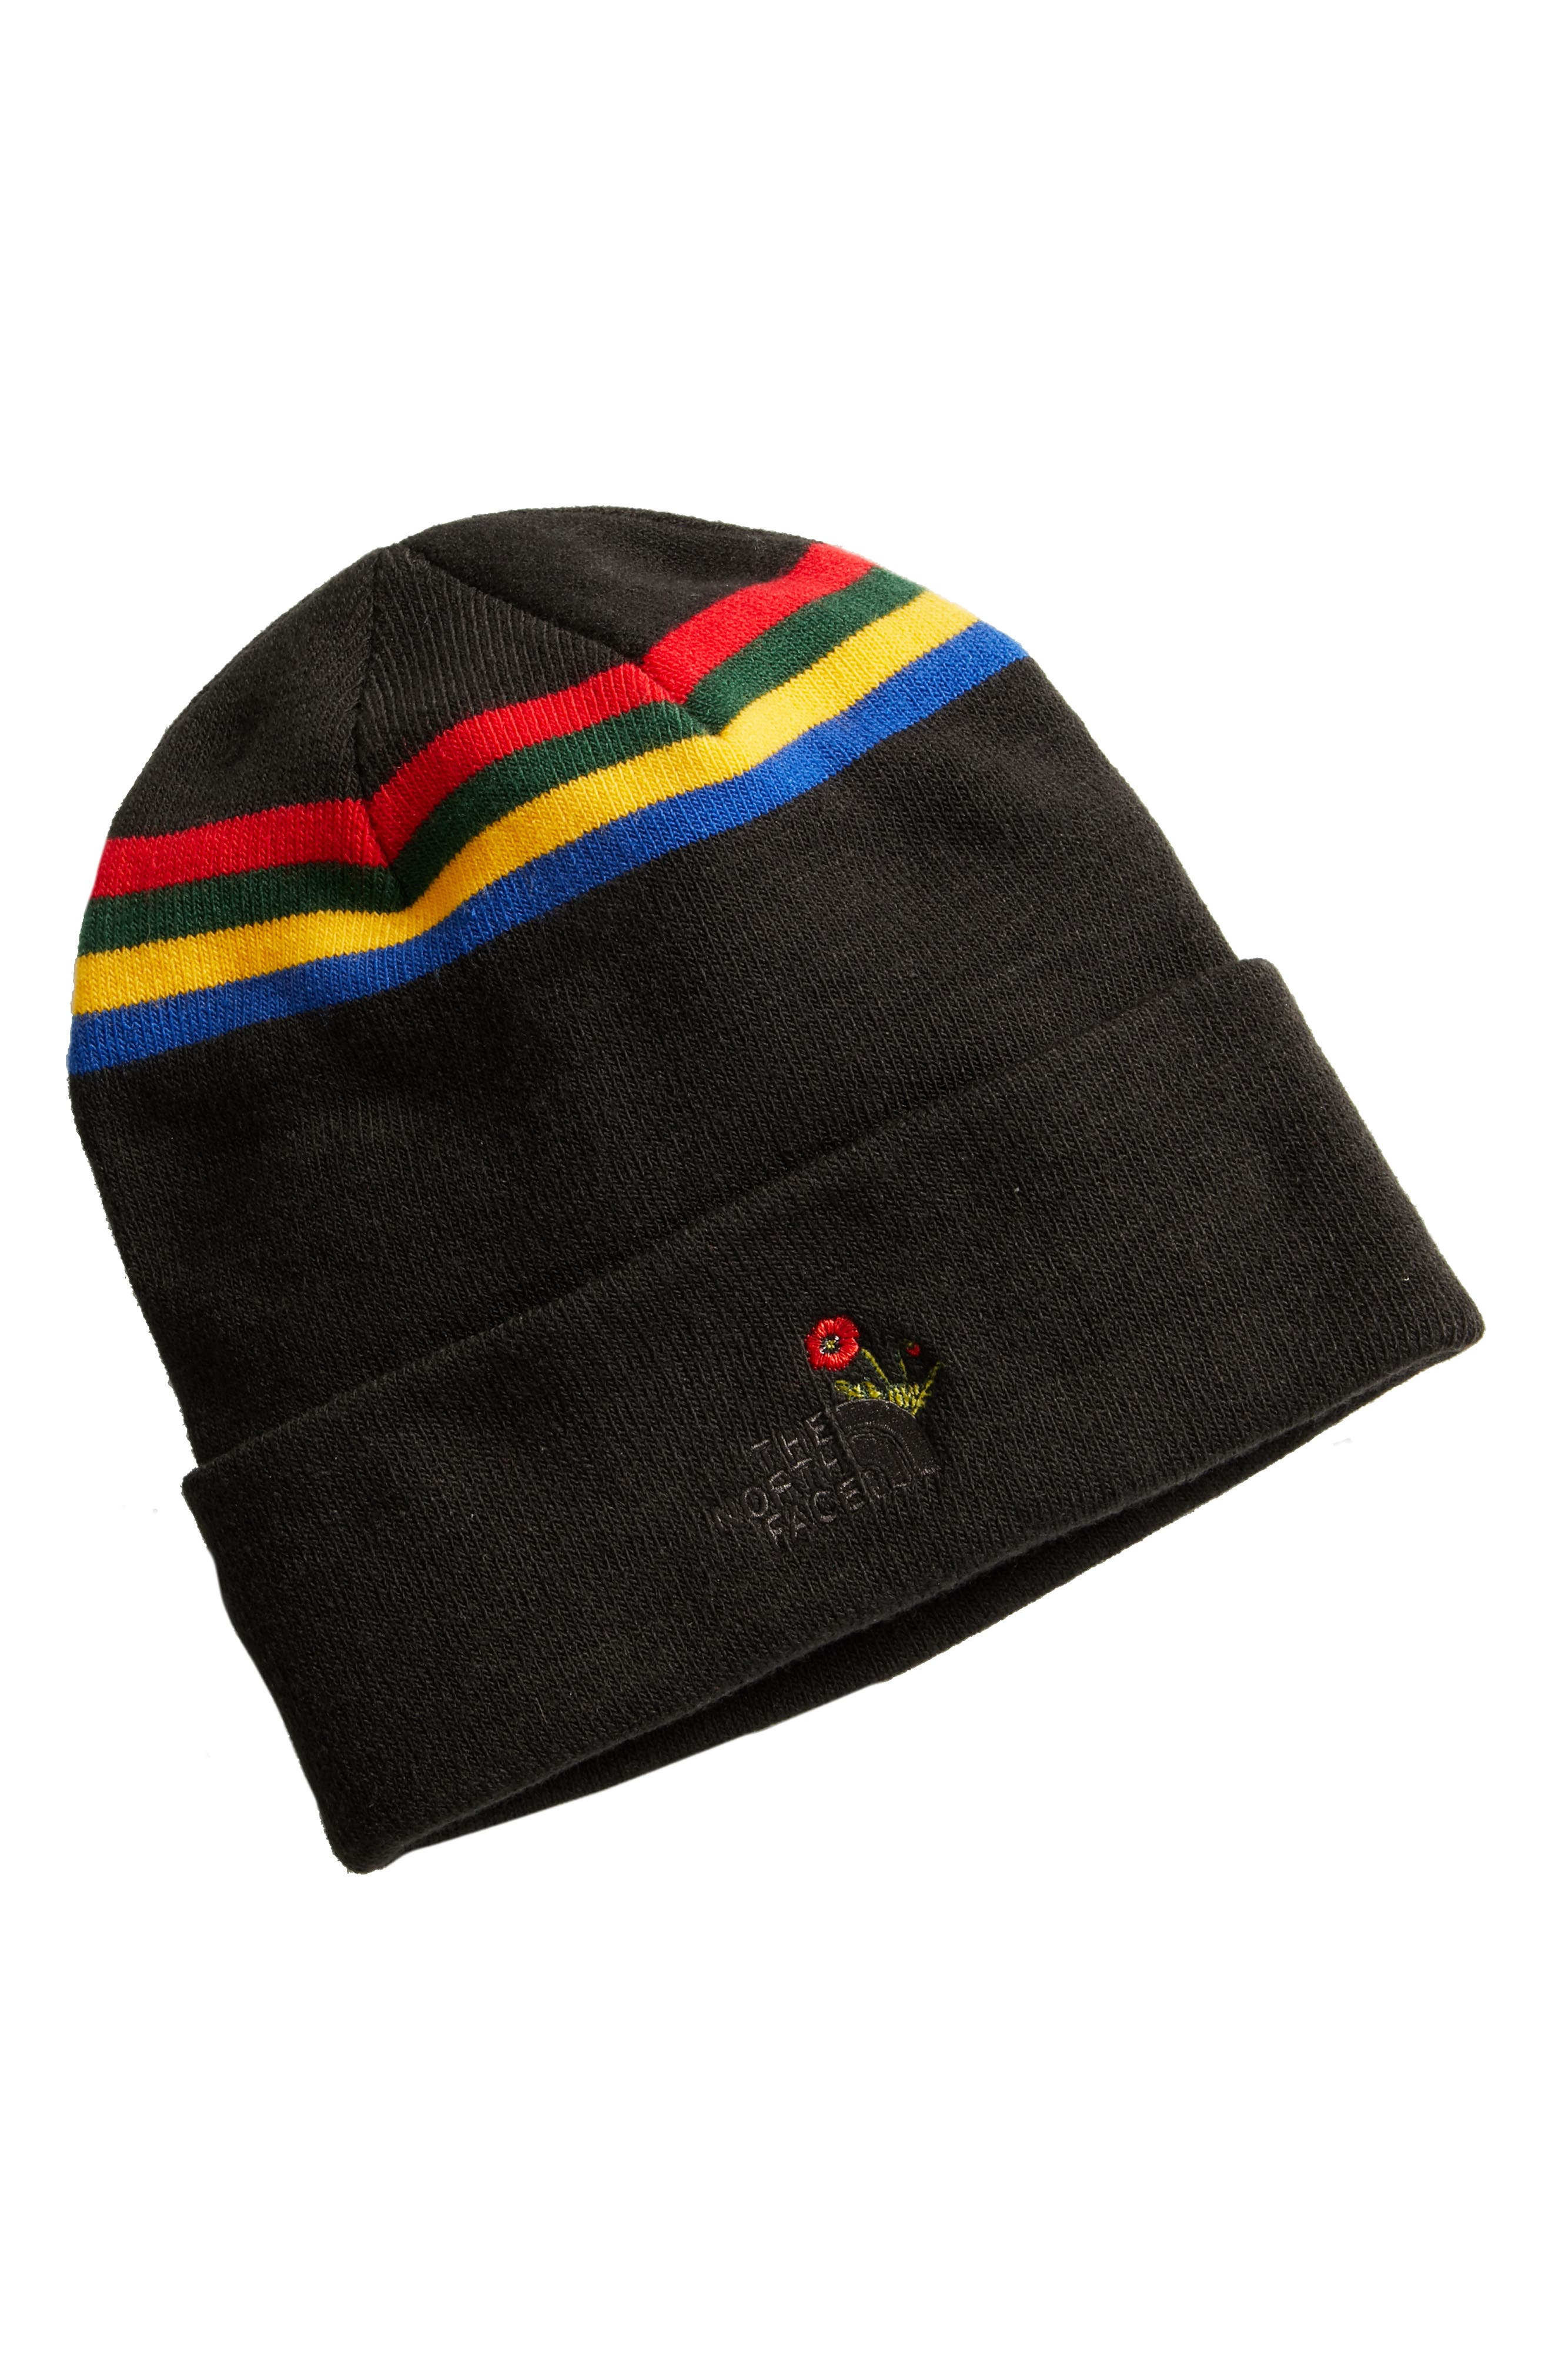 Poppy Dock Workers Beanie,                             Main thumbnail 1, color,                             001